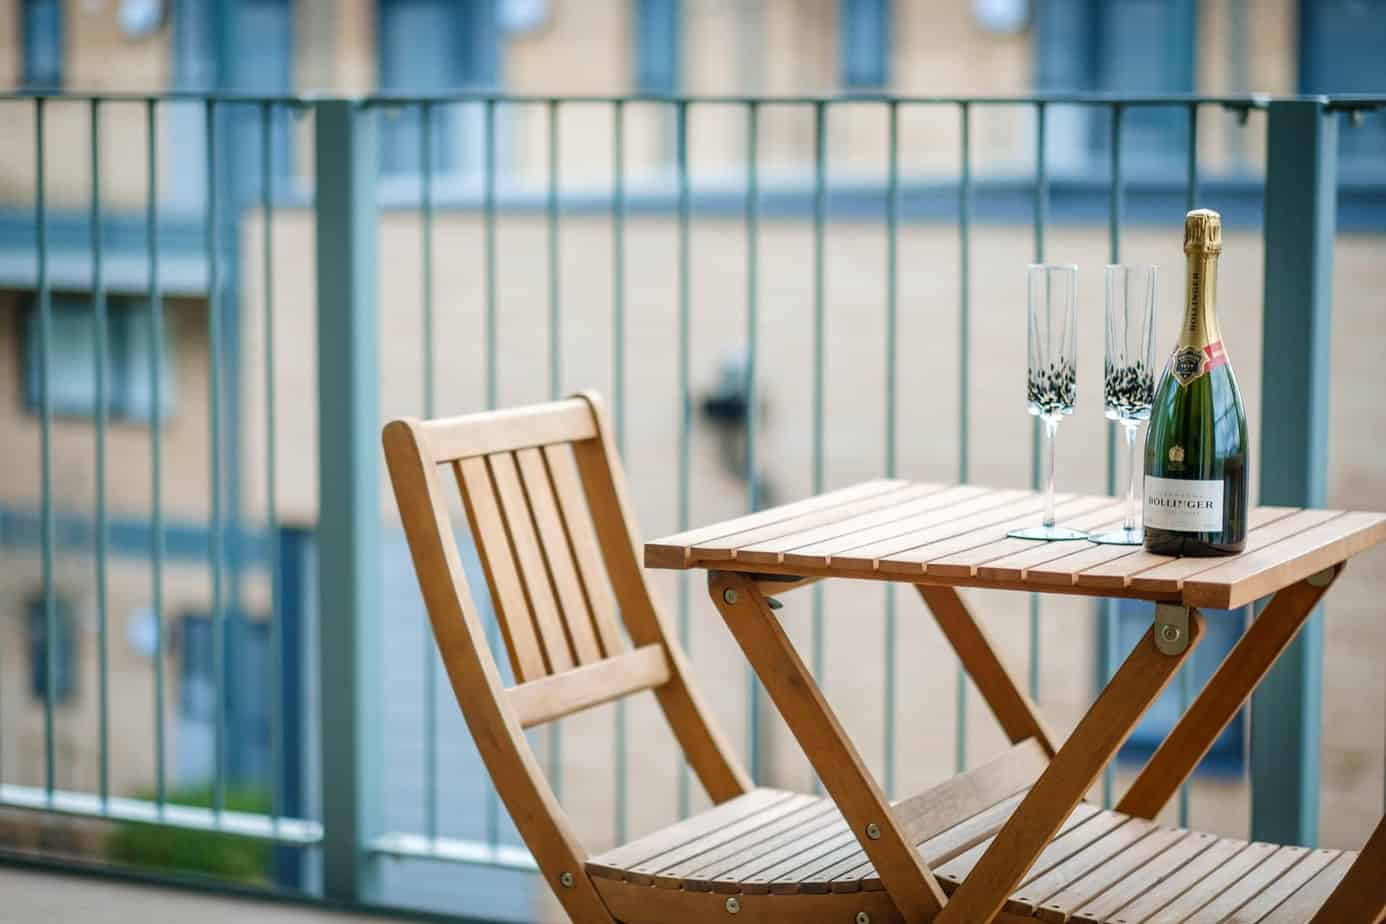 Tailored Stays grand central cambridge serviced apartment balcony